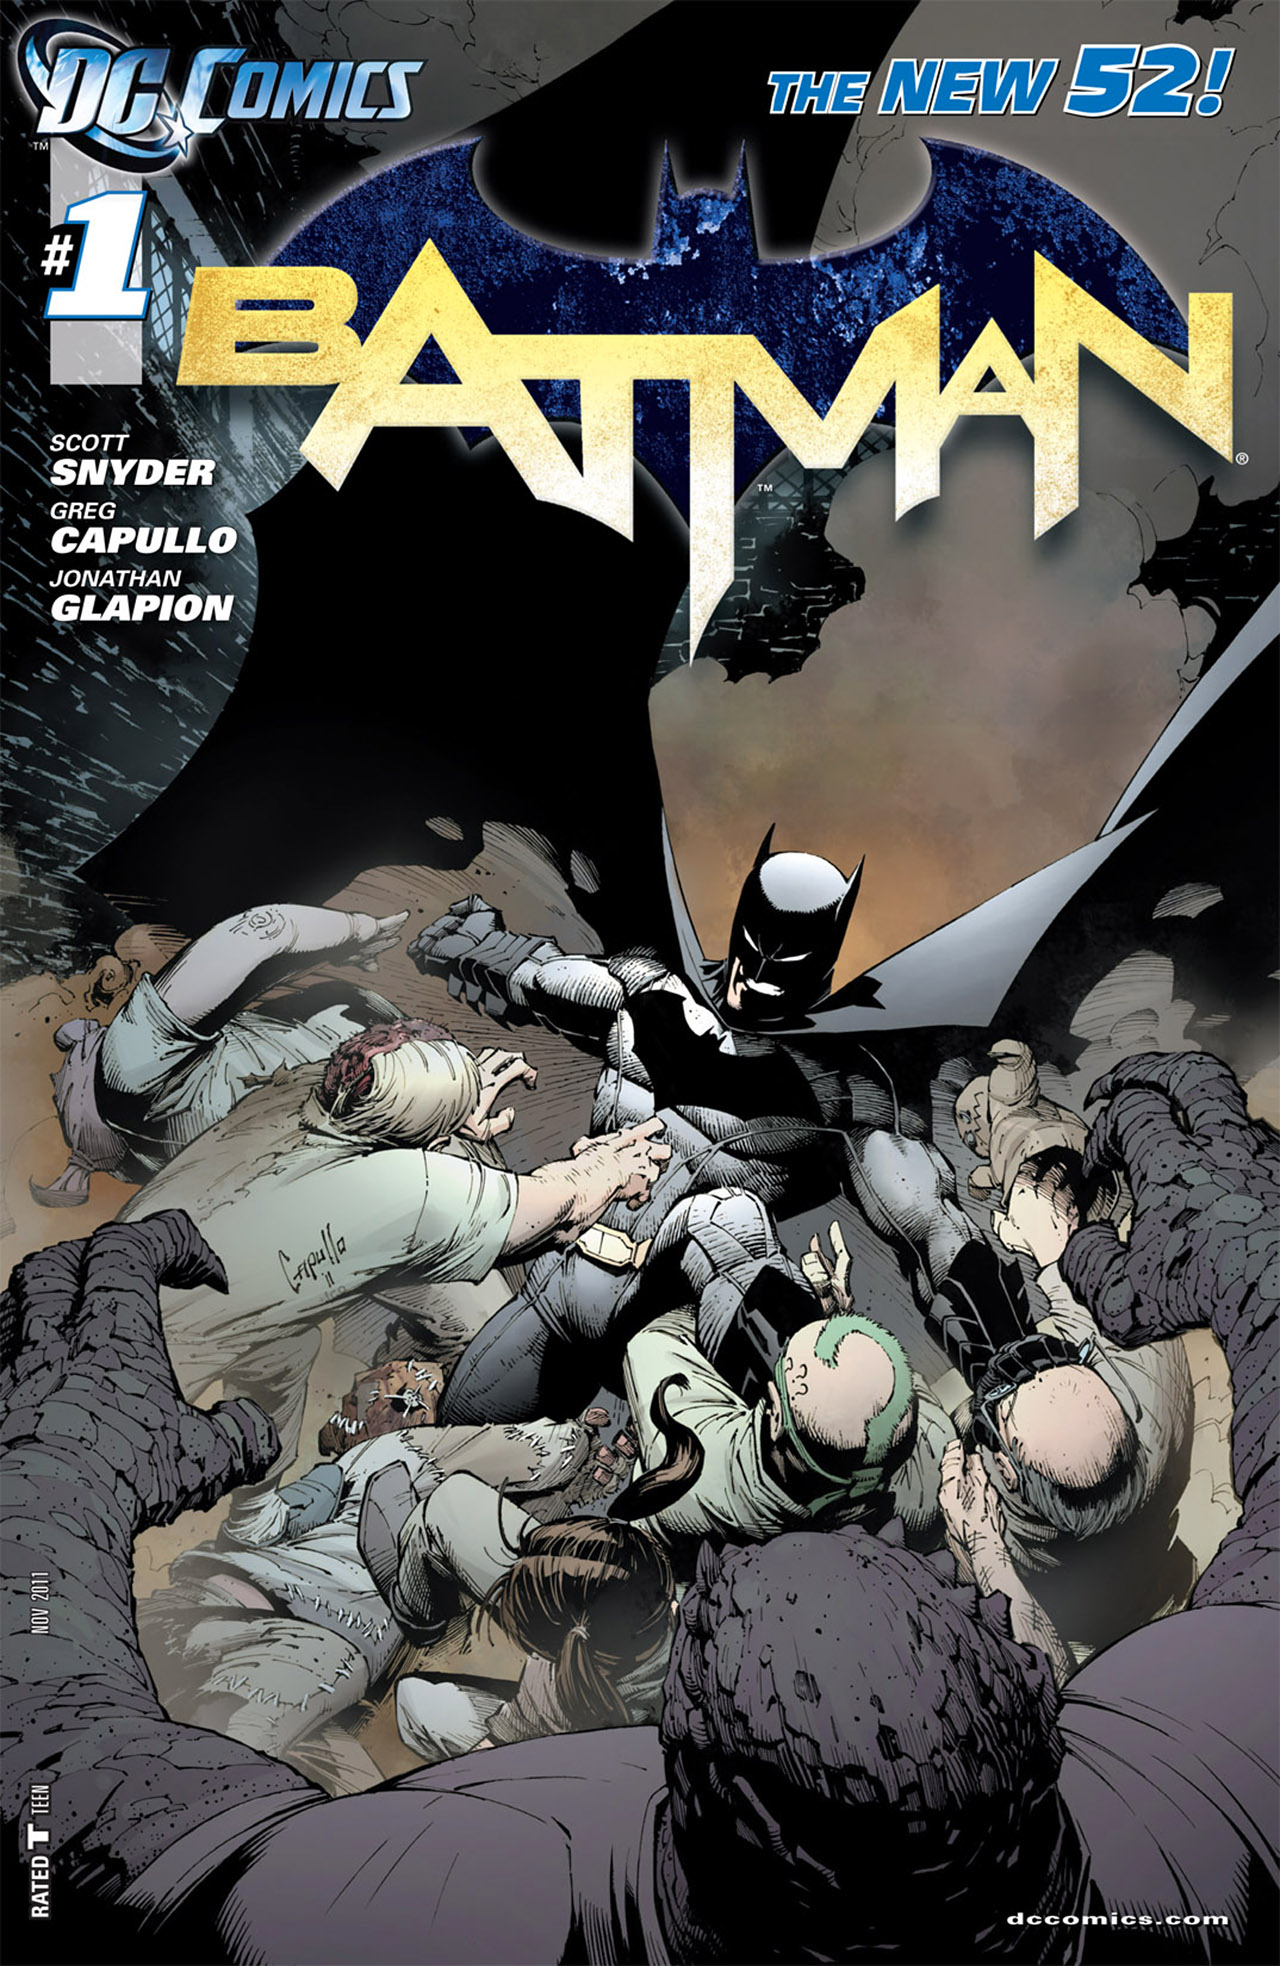 Image result for new 52 batman 1 comic cover